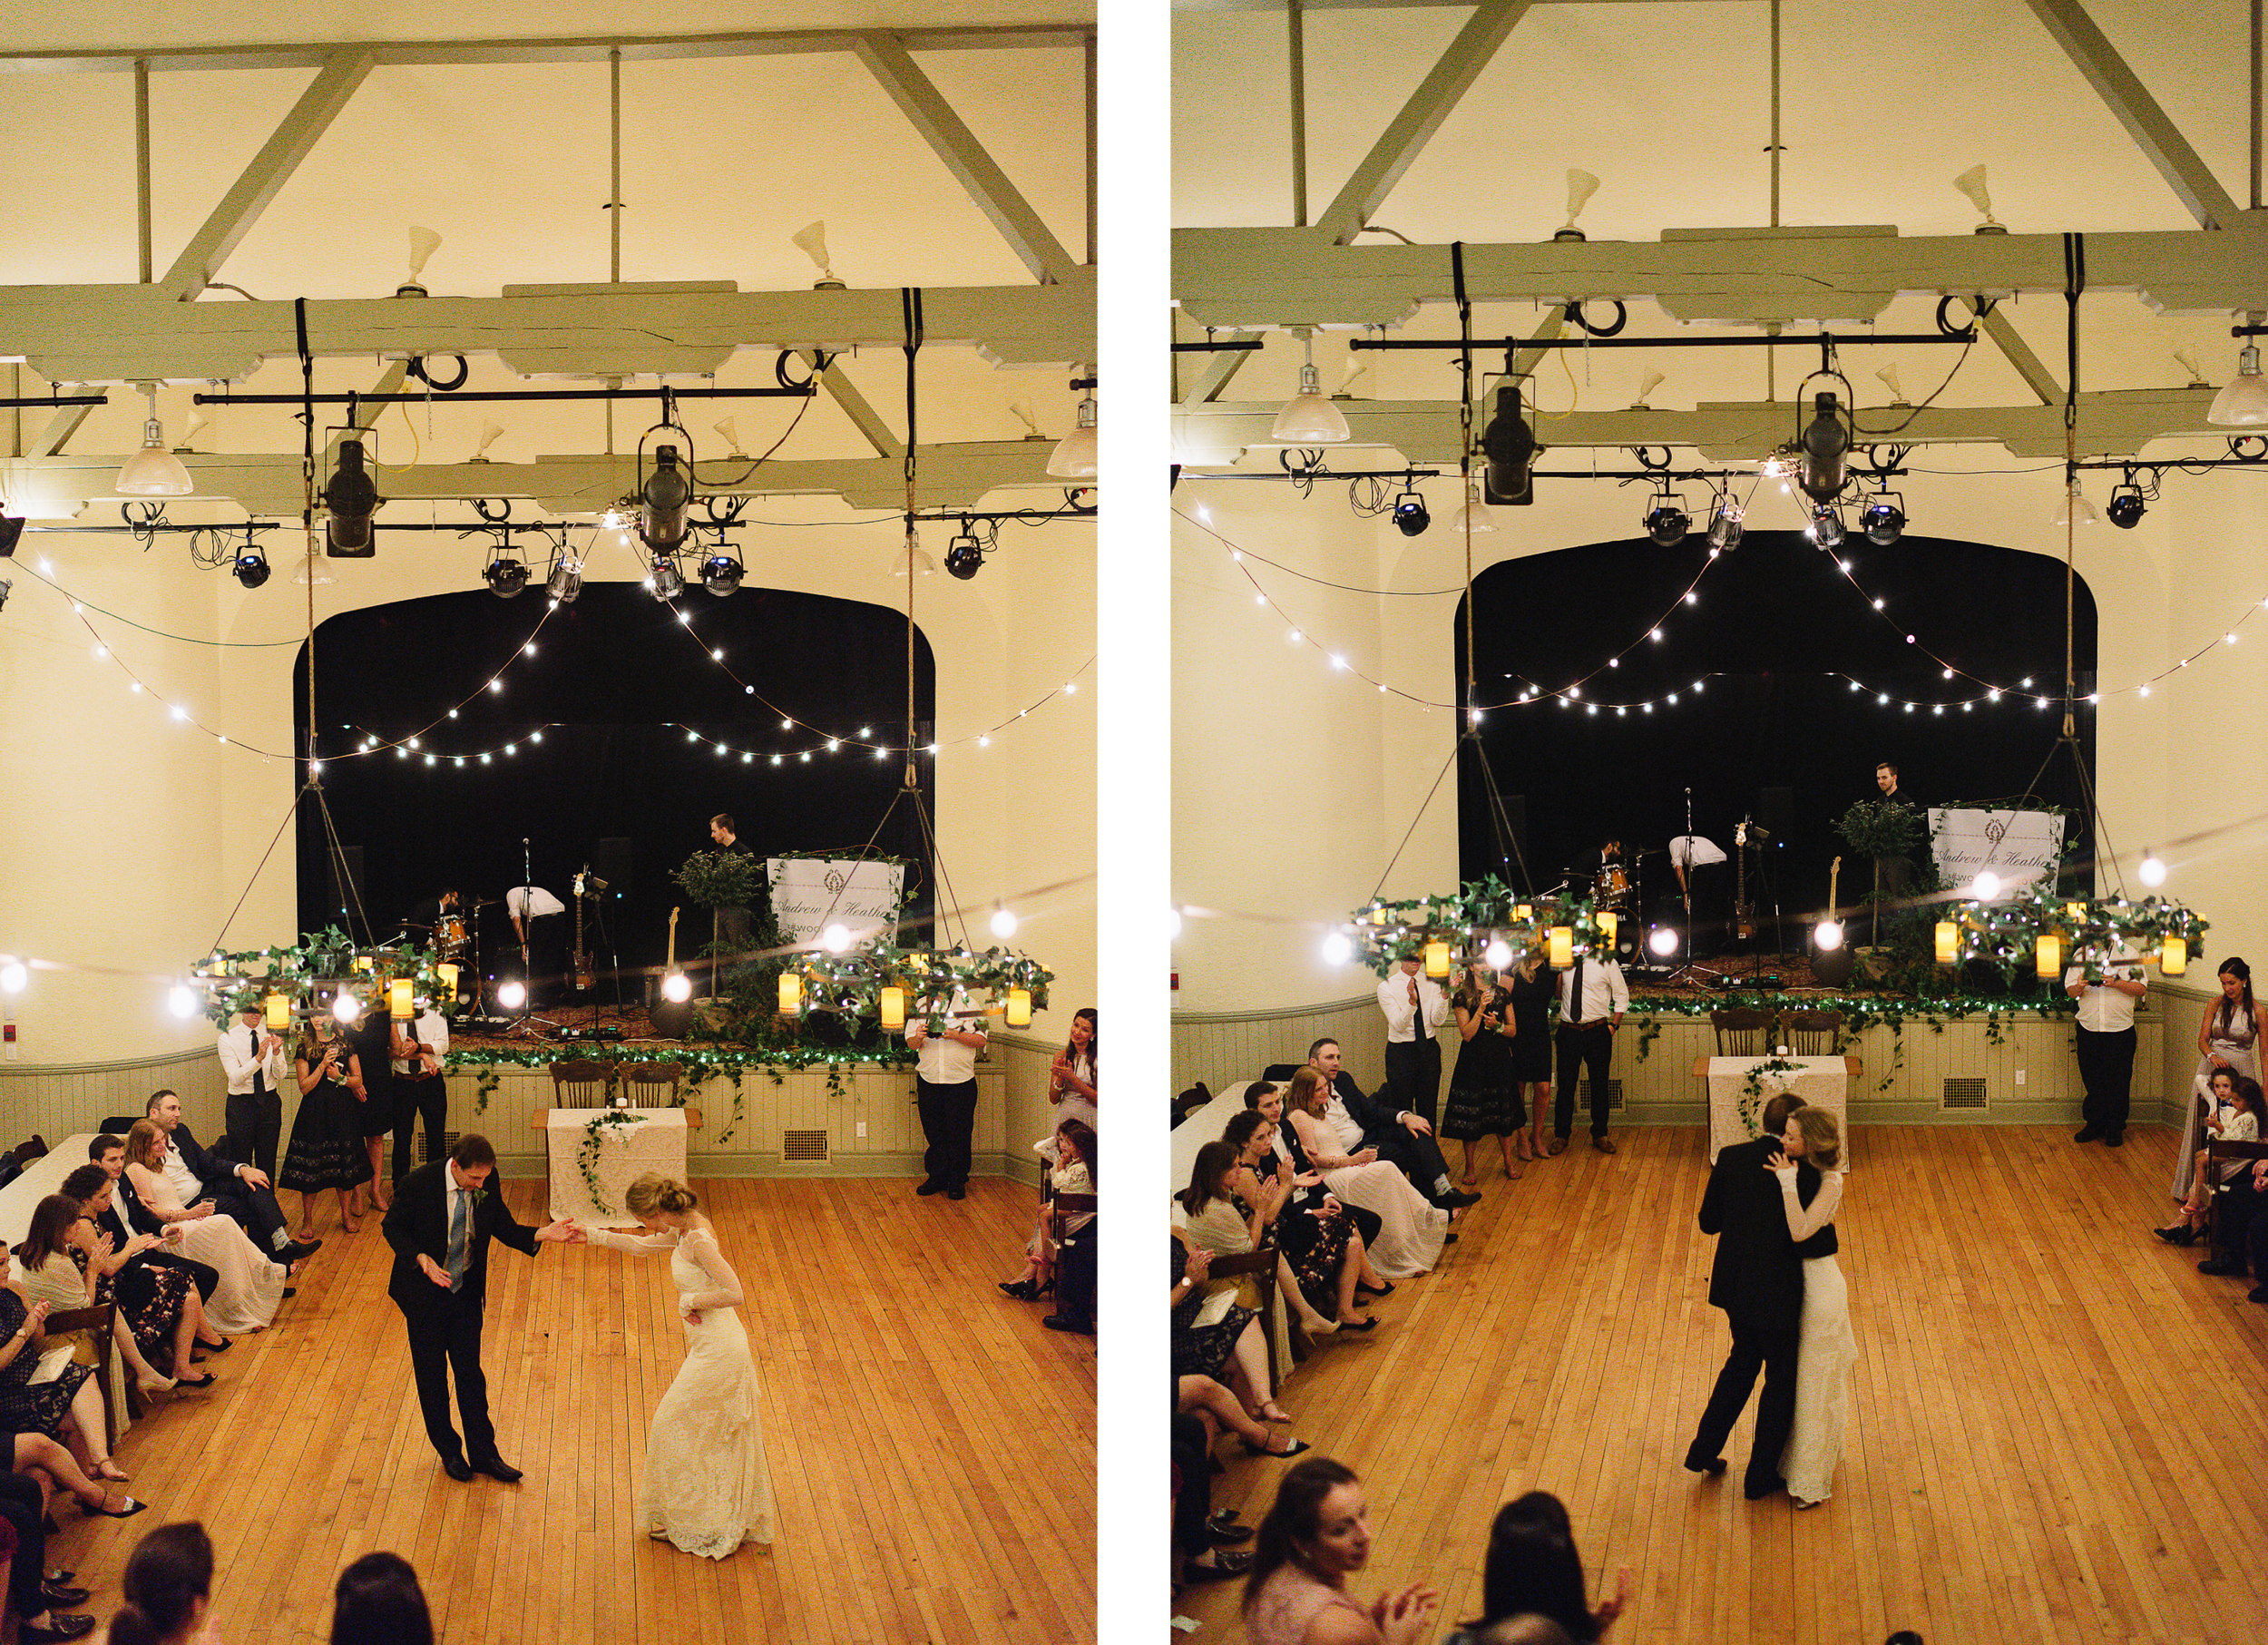 spread-9-Vertical-Best-Moody-Documentary-Wedding-Photography-Photojournalism-Vintage-Small-Town-Chapel-Wedding-Toronto-Ontario_Bridal-Portraits-Bride-and-dad-dancing-hug.png